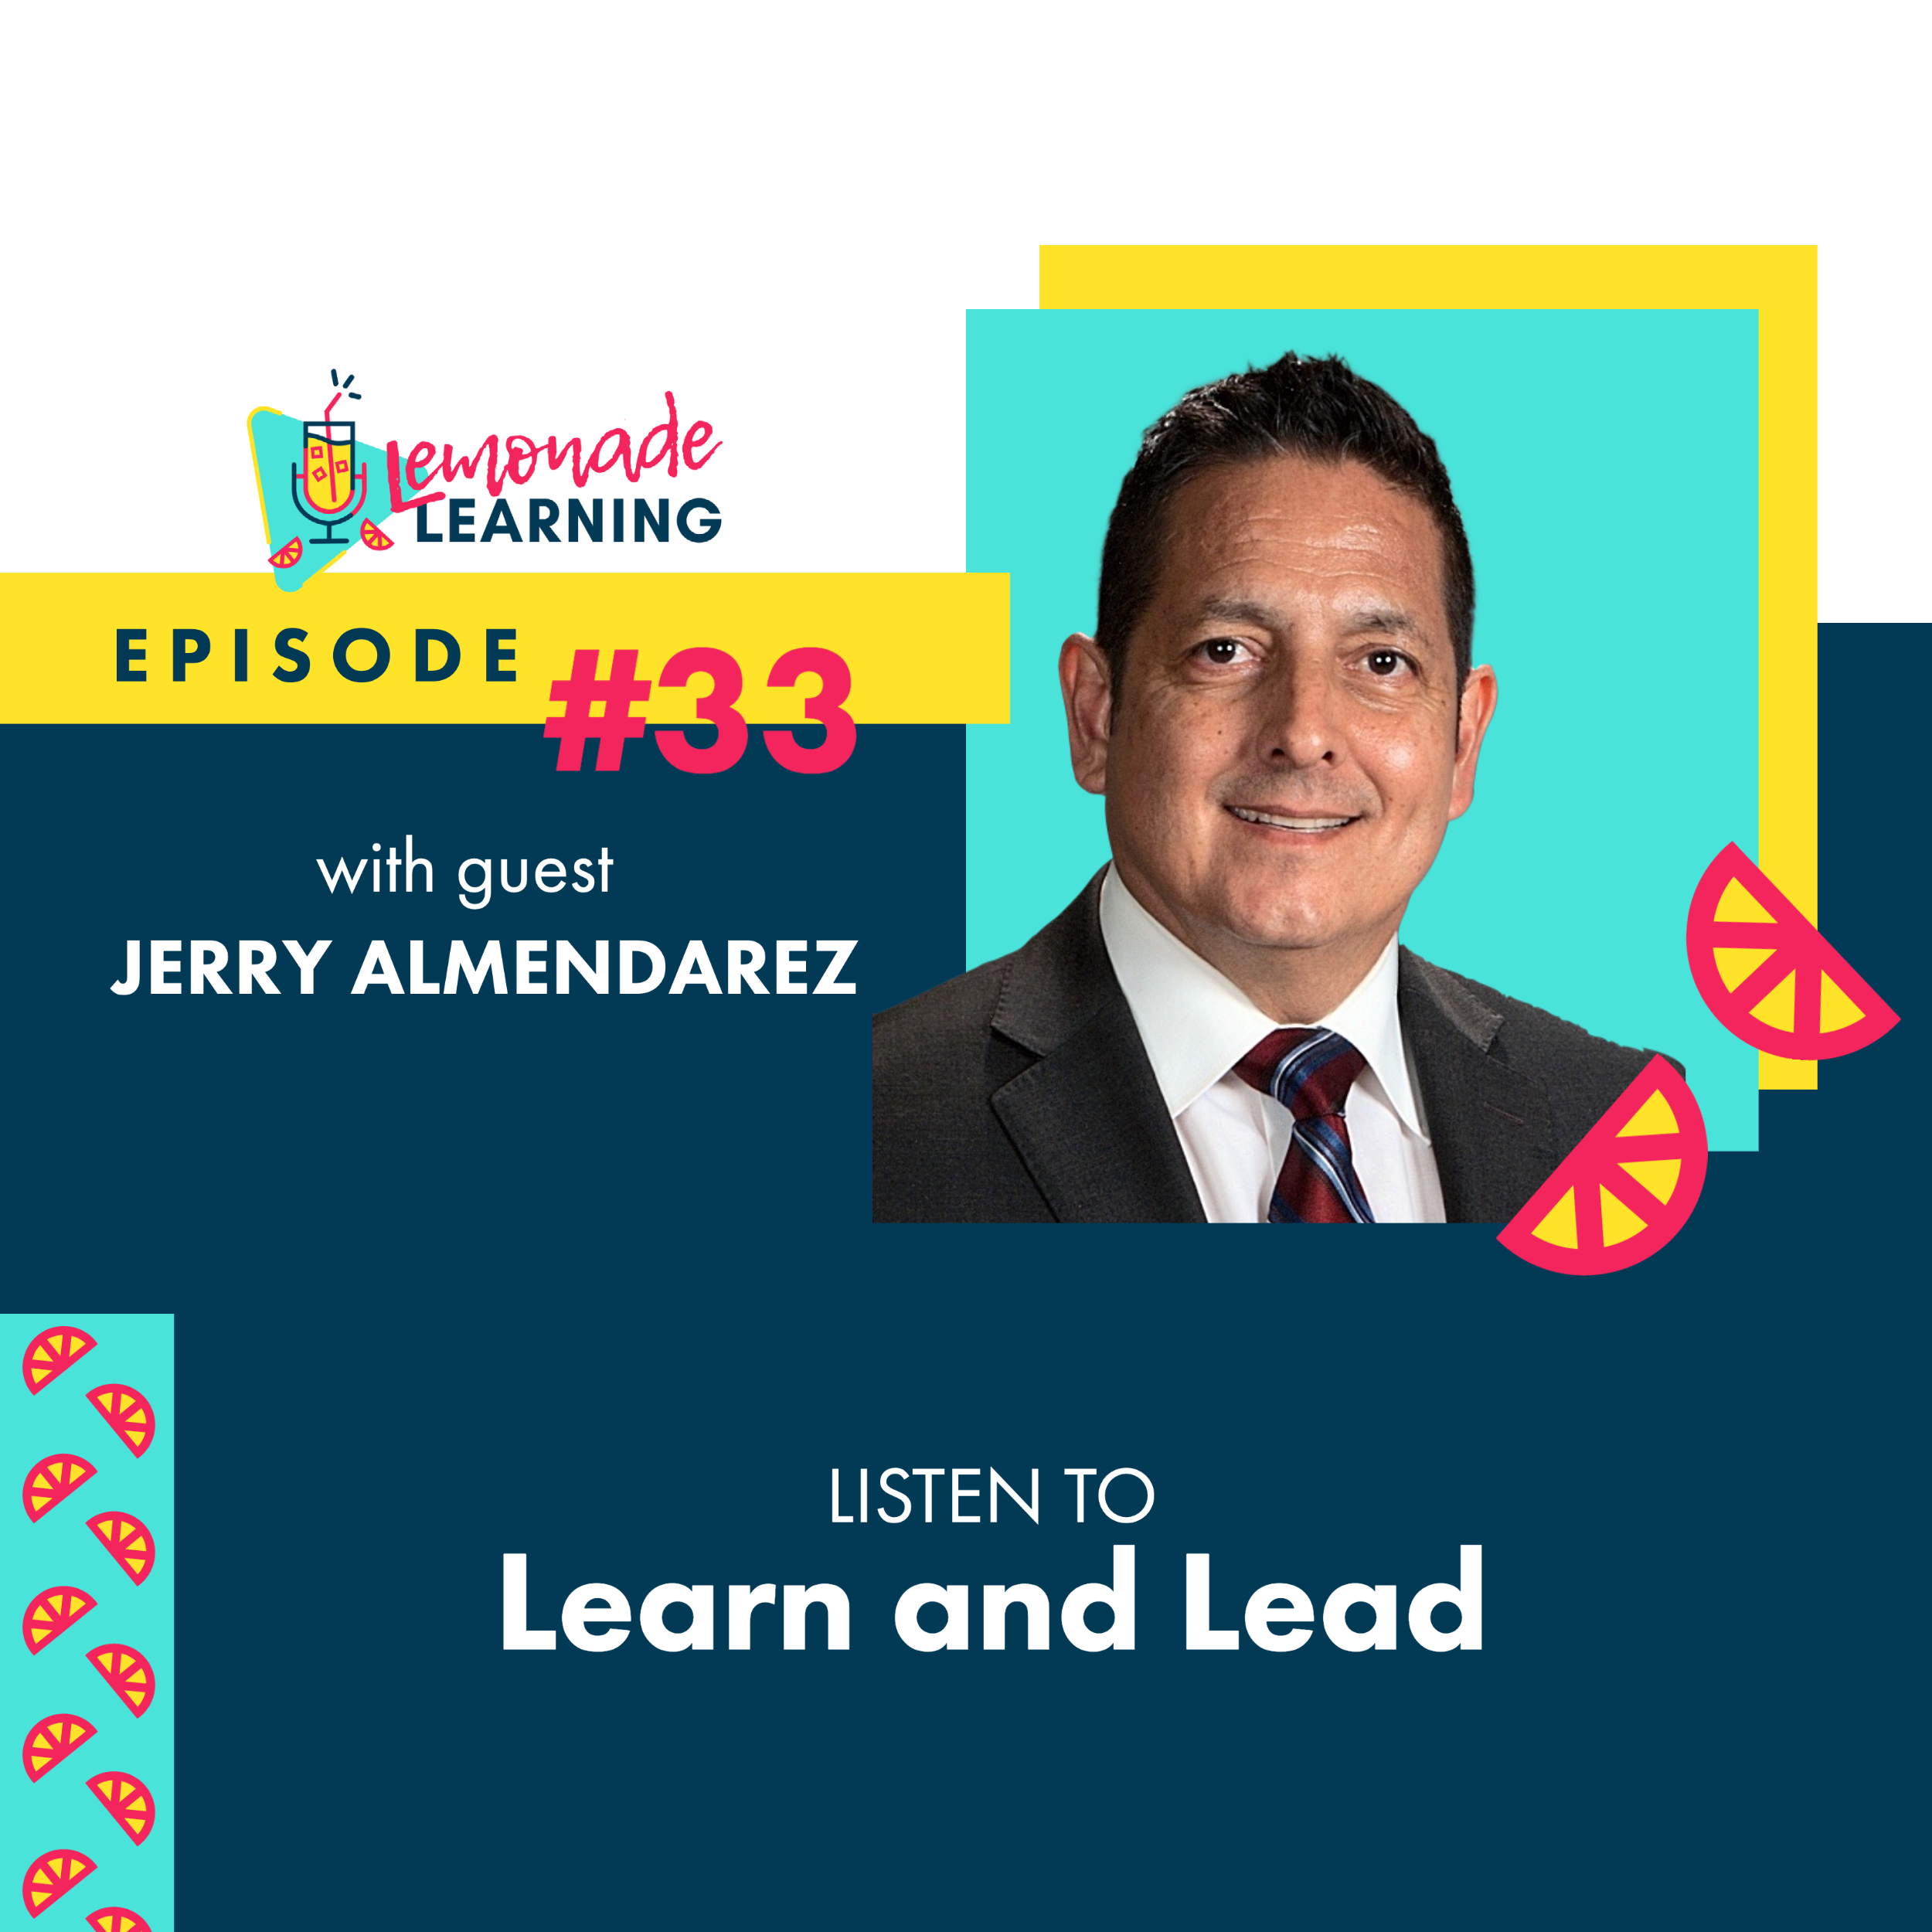 Superintendent Jerry Almendarez joins Lemonade Learning for the 33rd episode, Listen To Learn and Lead